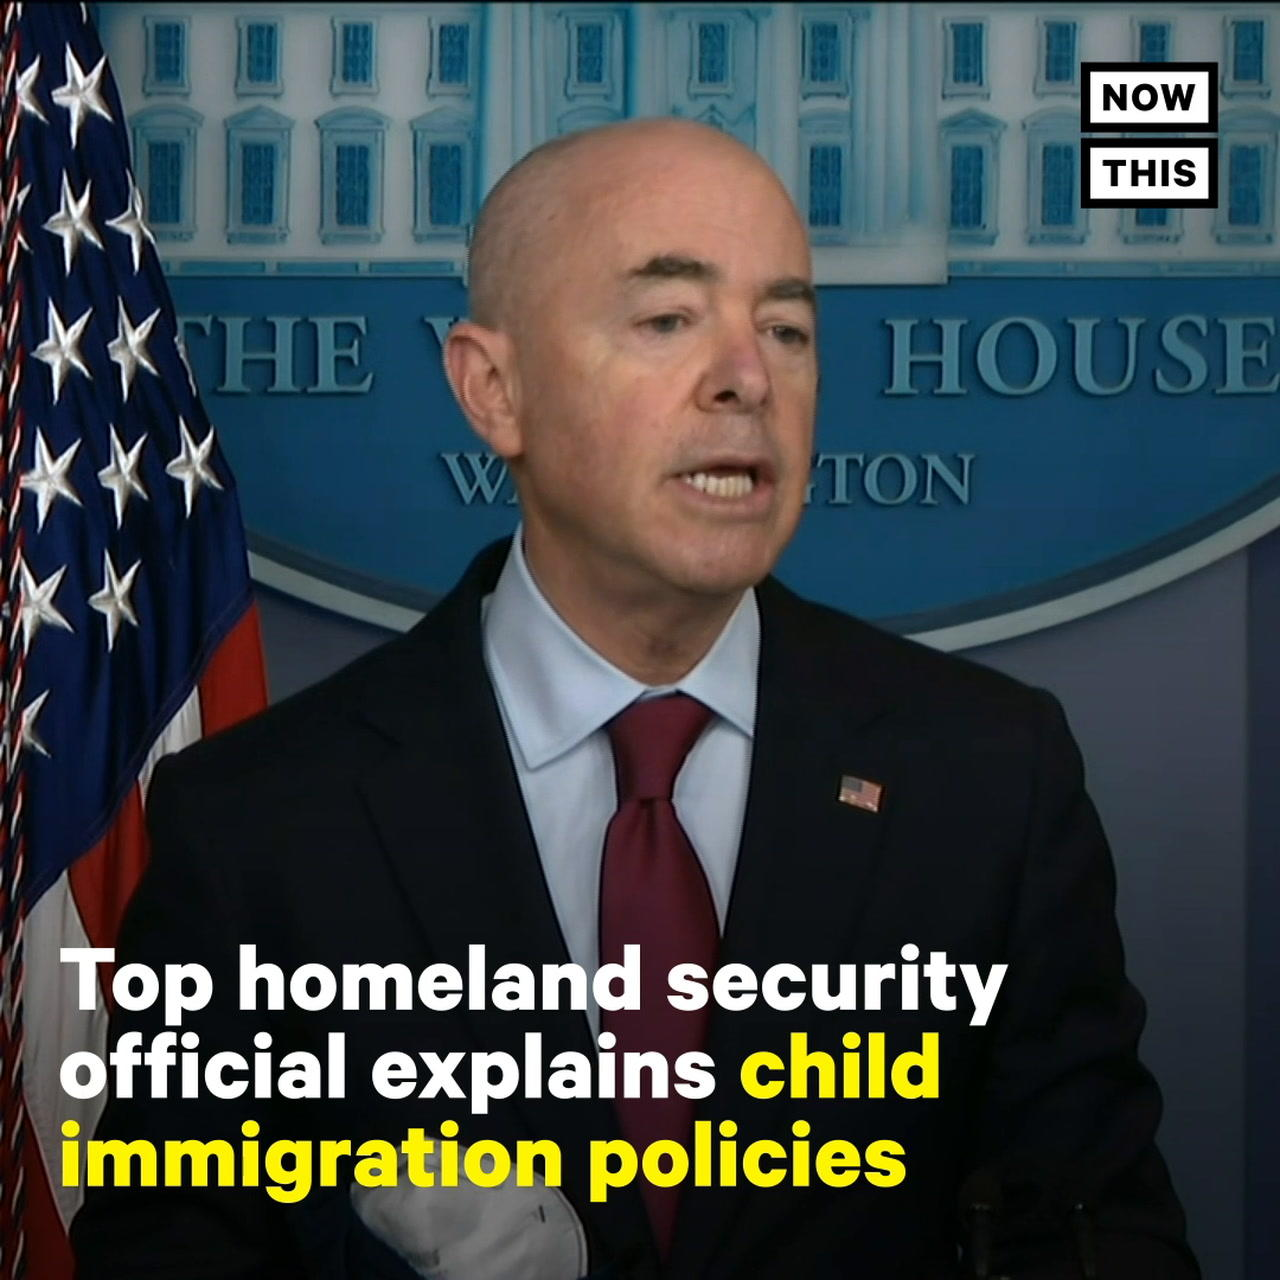 DHS Sec. Mayorkas on Rebuilding Immigration System Post-Trump: 'The Entire System Was Gutted'